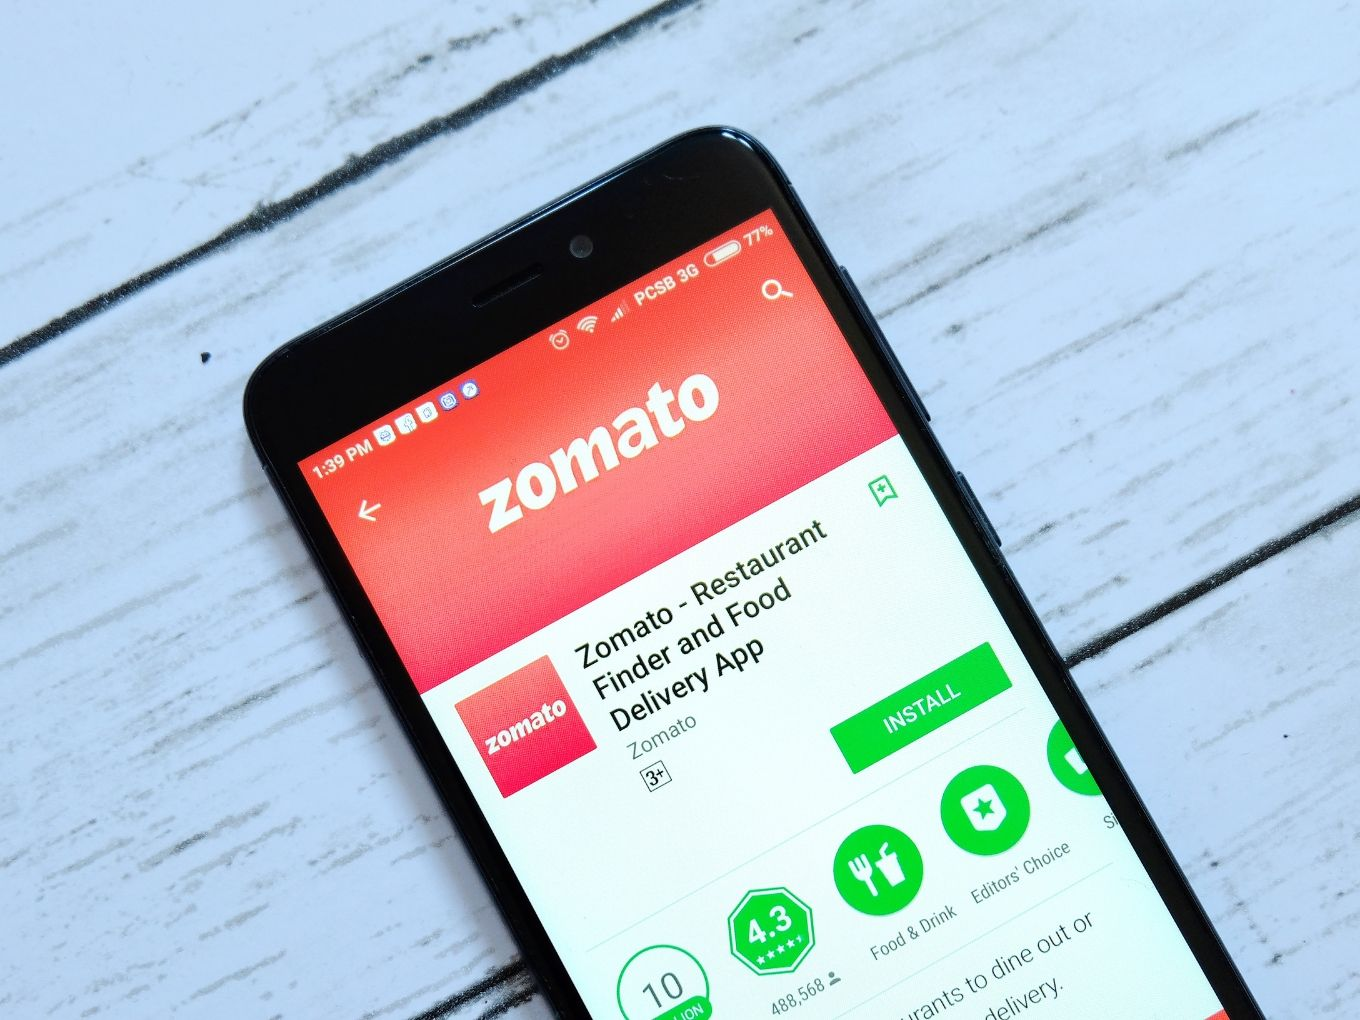 Zomato Responds To #LogOut Campaign As Restaurants Call For Fewer Discounts